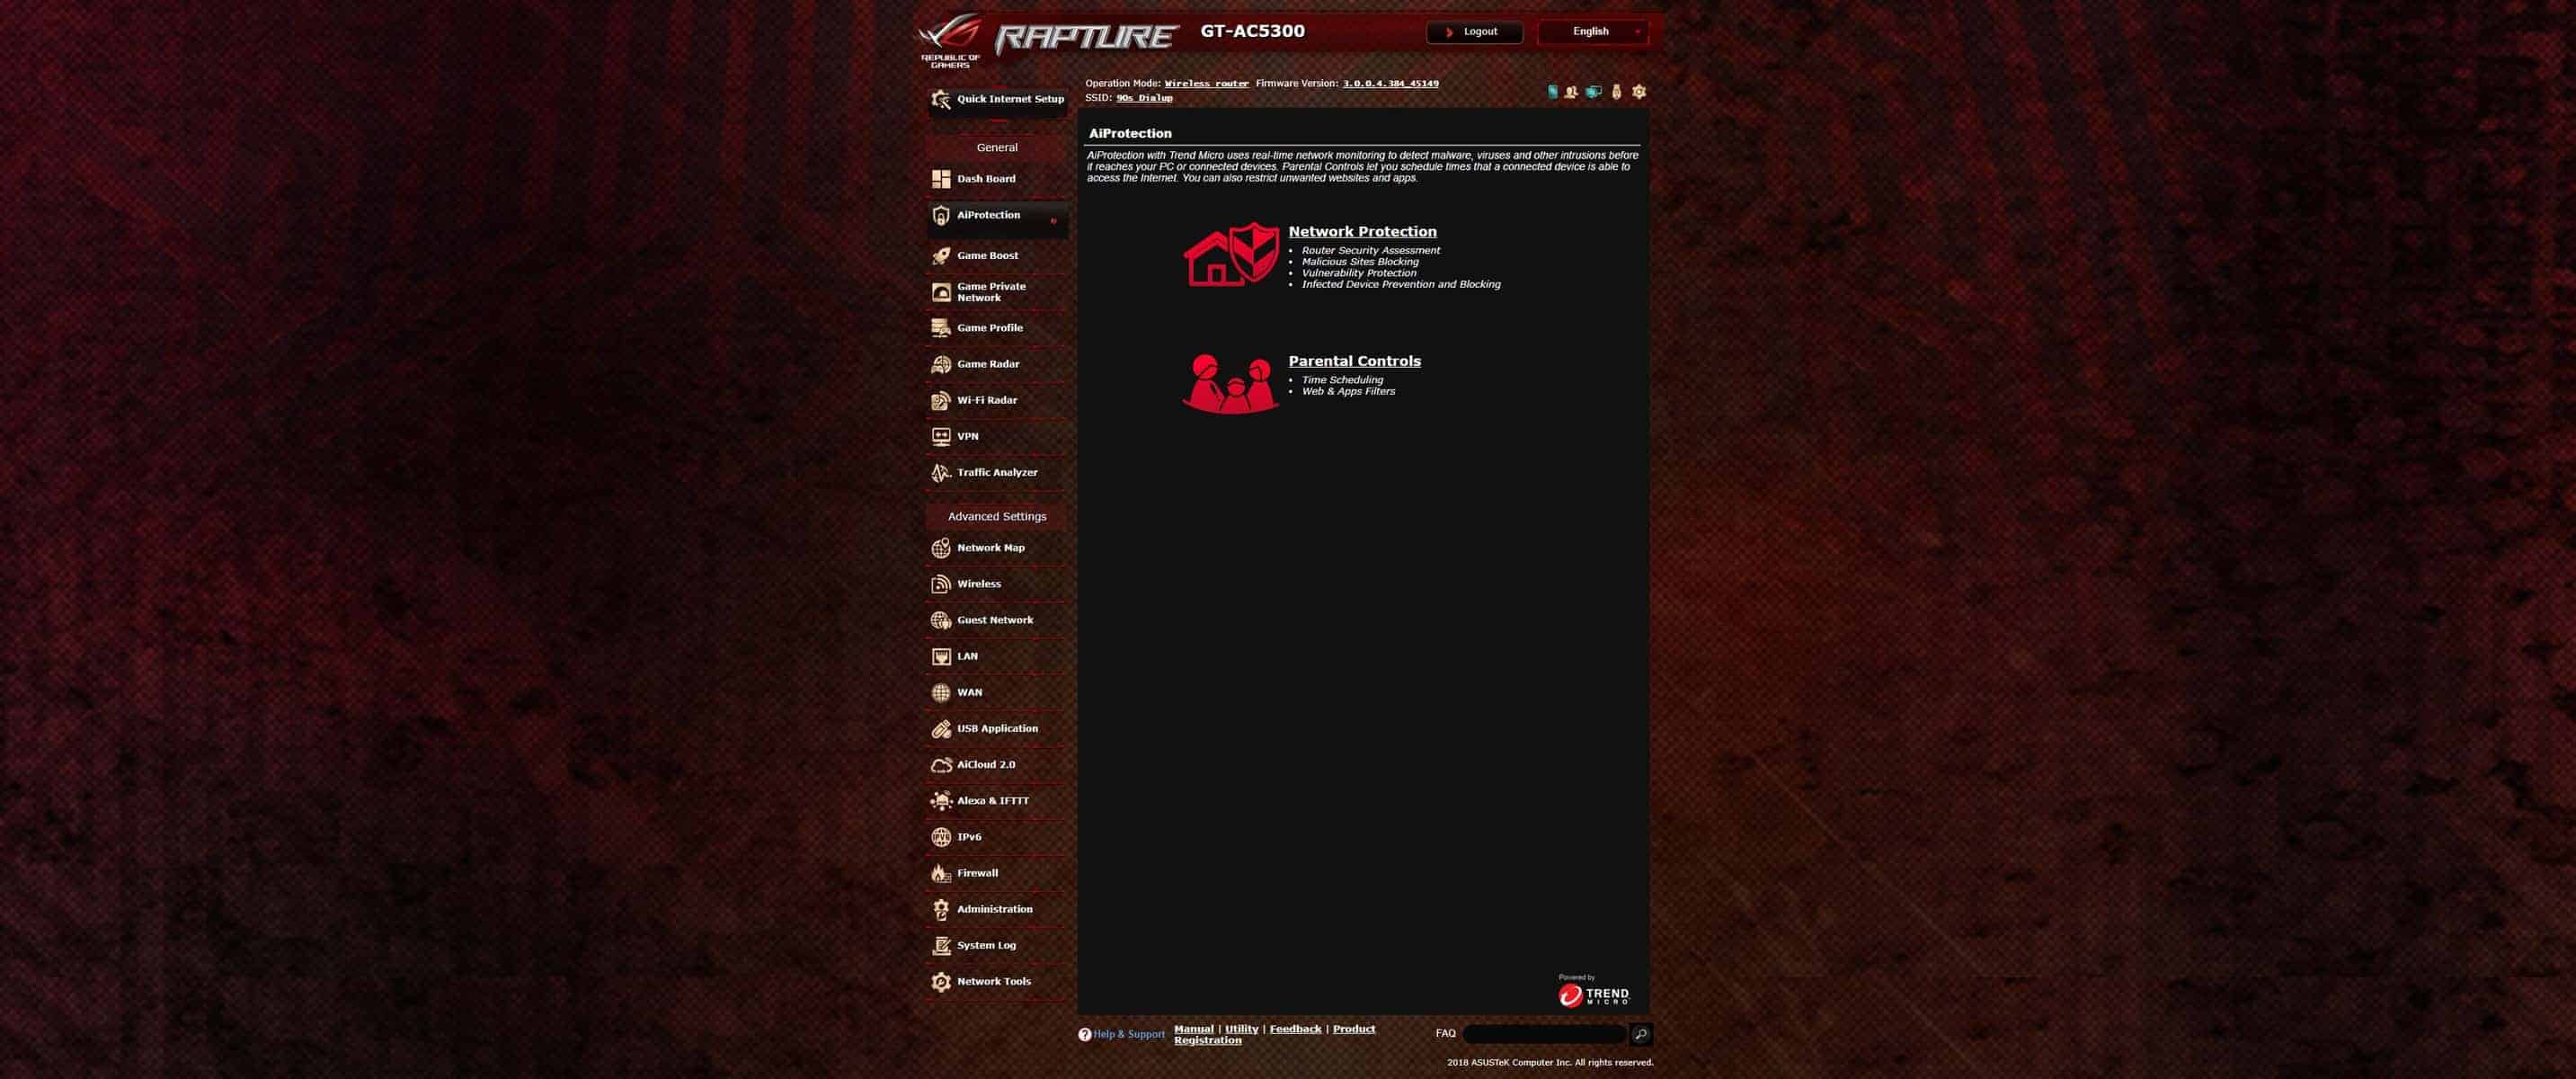 Asus ROG Rapture GT-AC5300 Review - The Streaming Blog